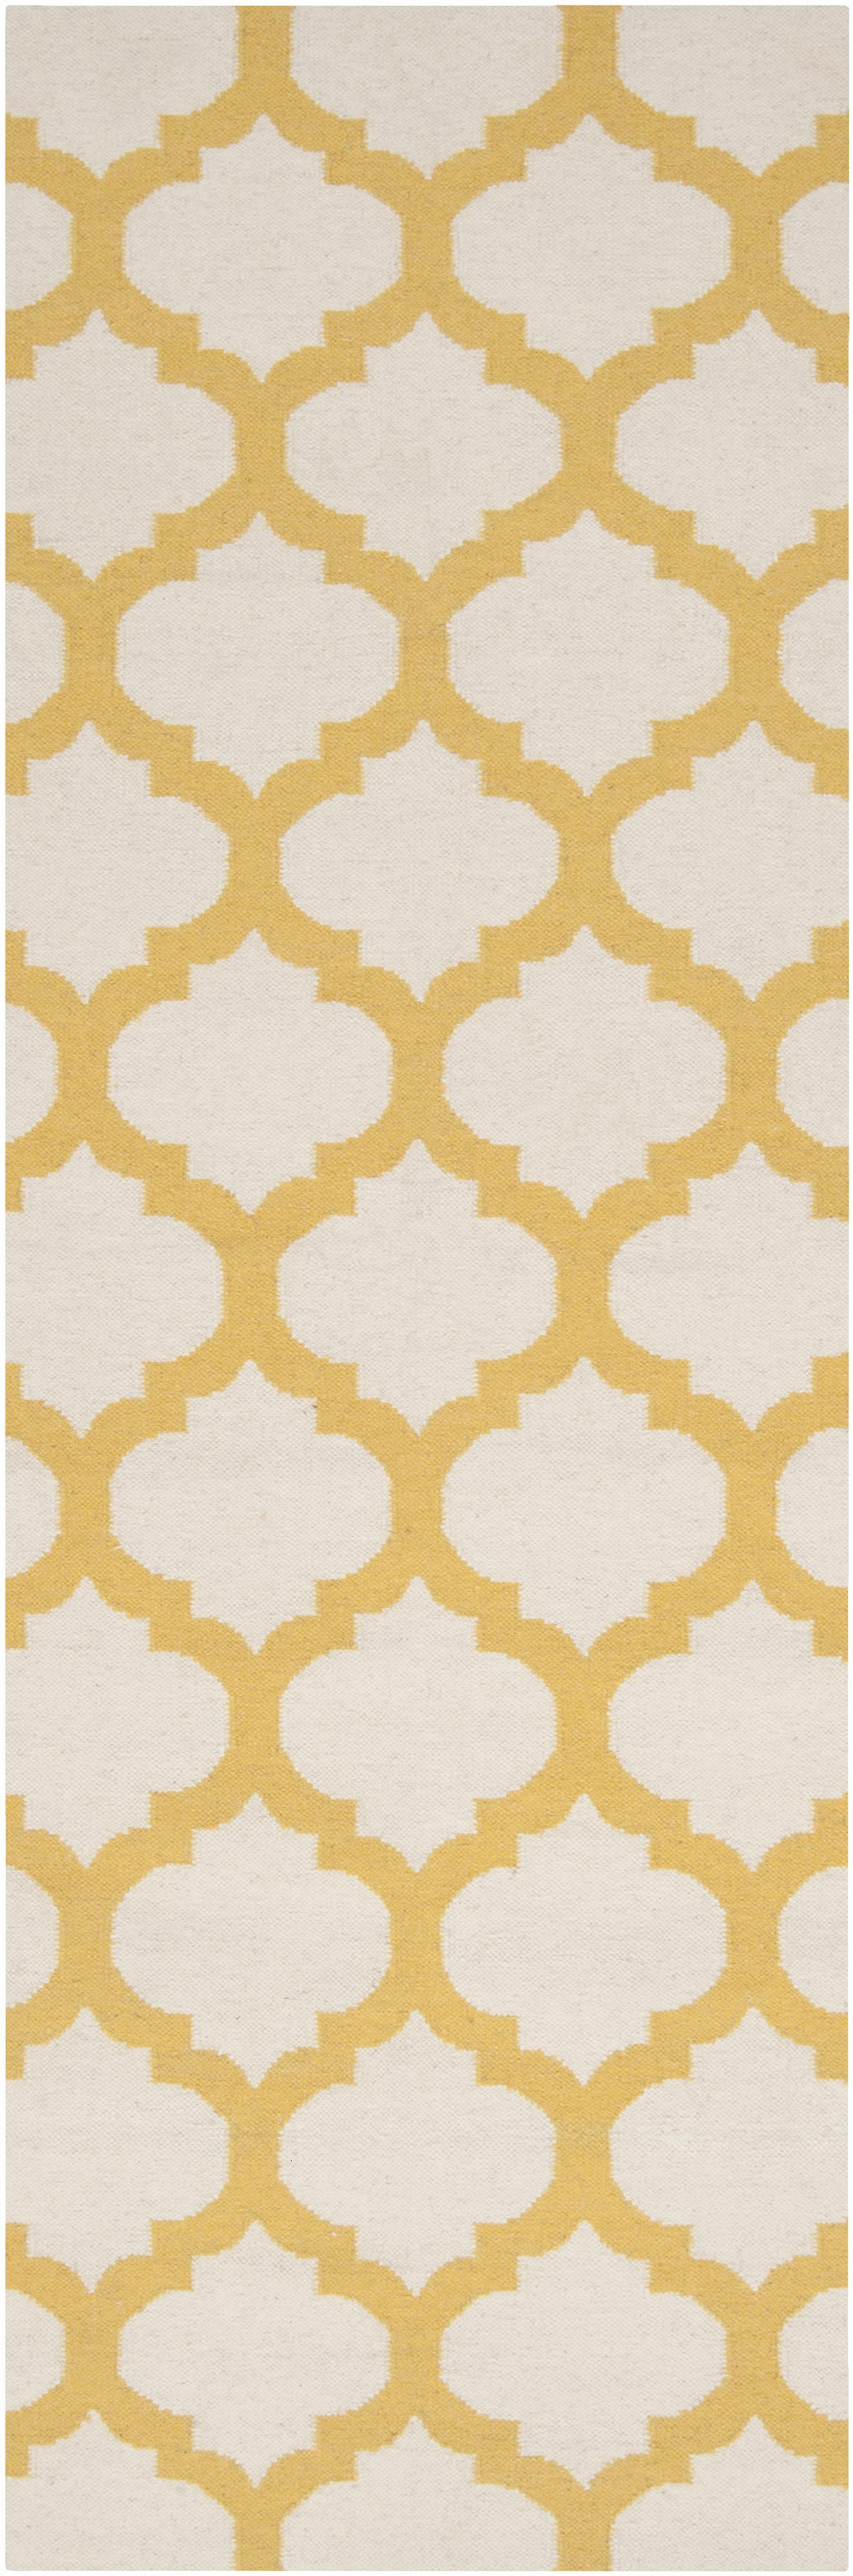 "Surya Rugs Frontier 2'6"" x 8' - Item Number: FT121-268"